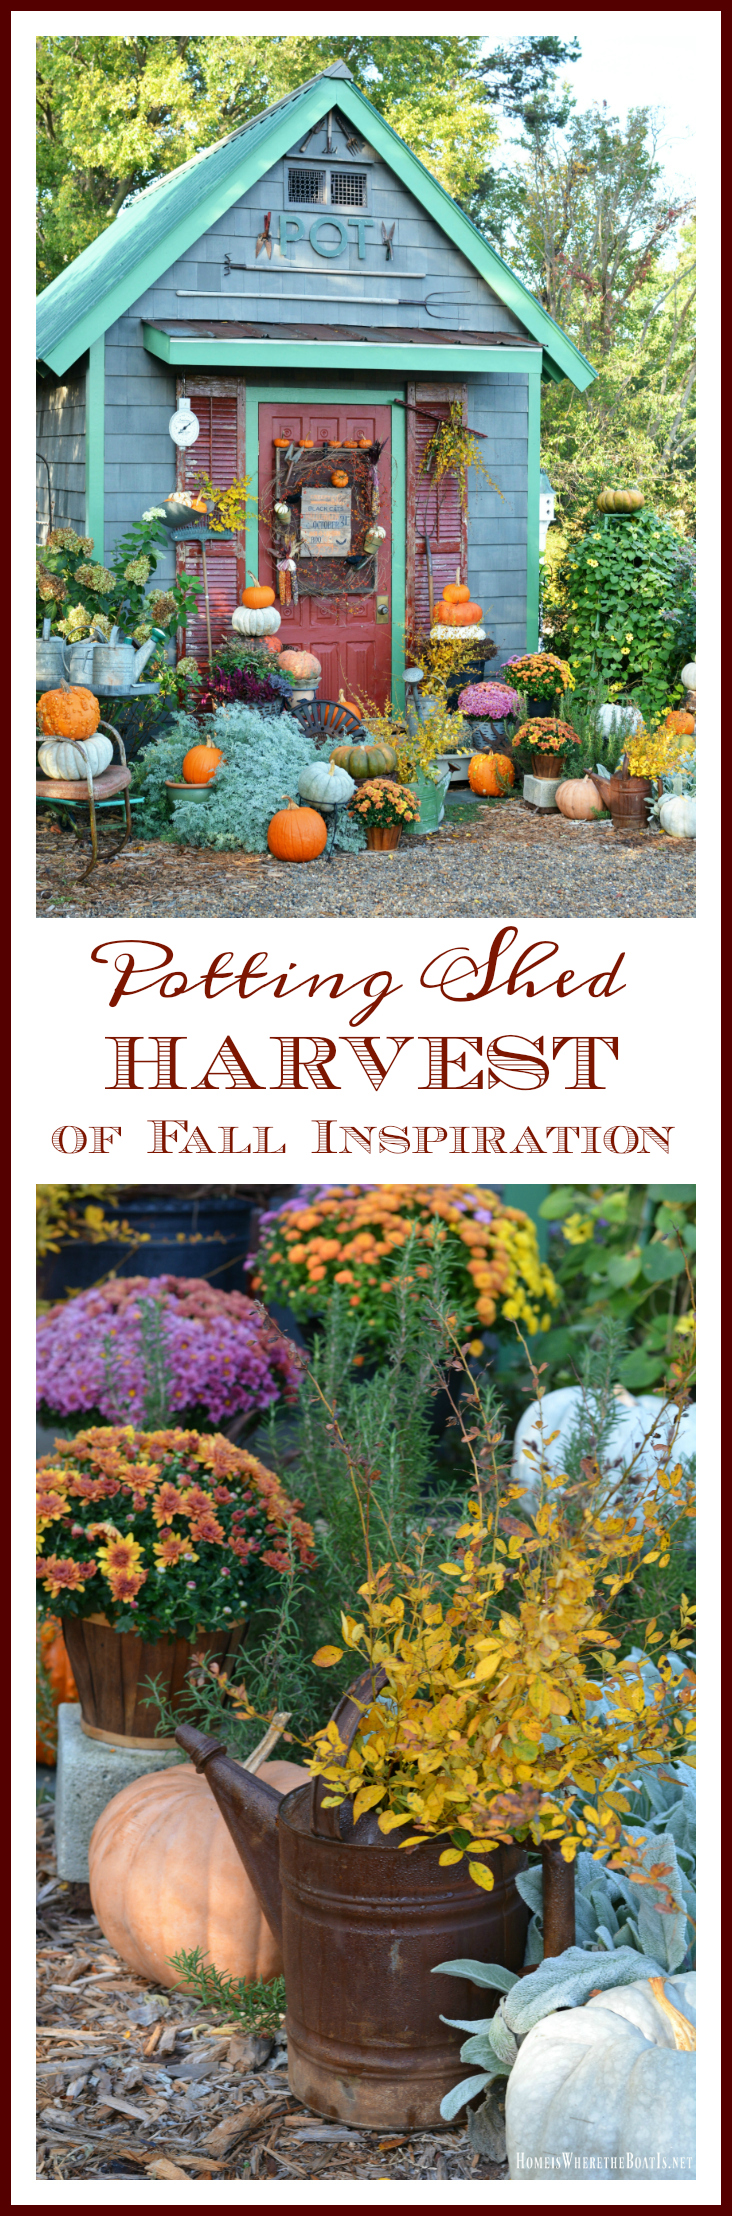 a-harvest-of-fall-inspiration-around-the-potting-shed